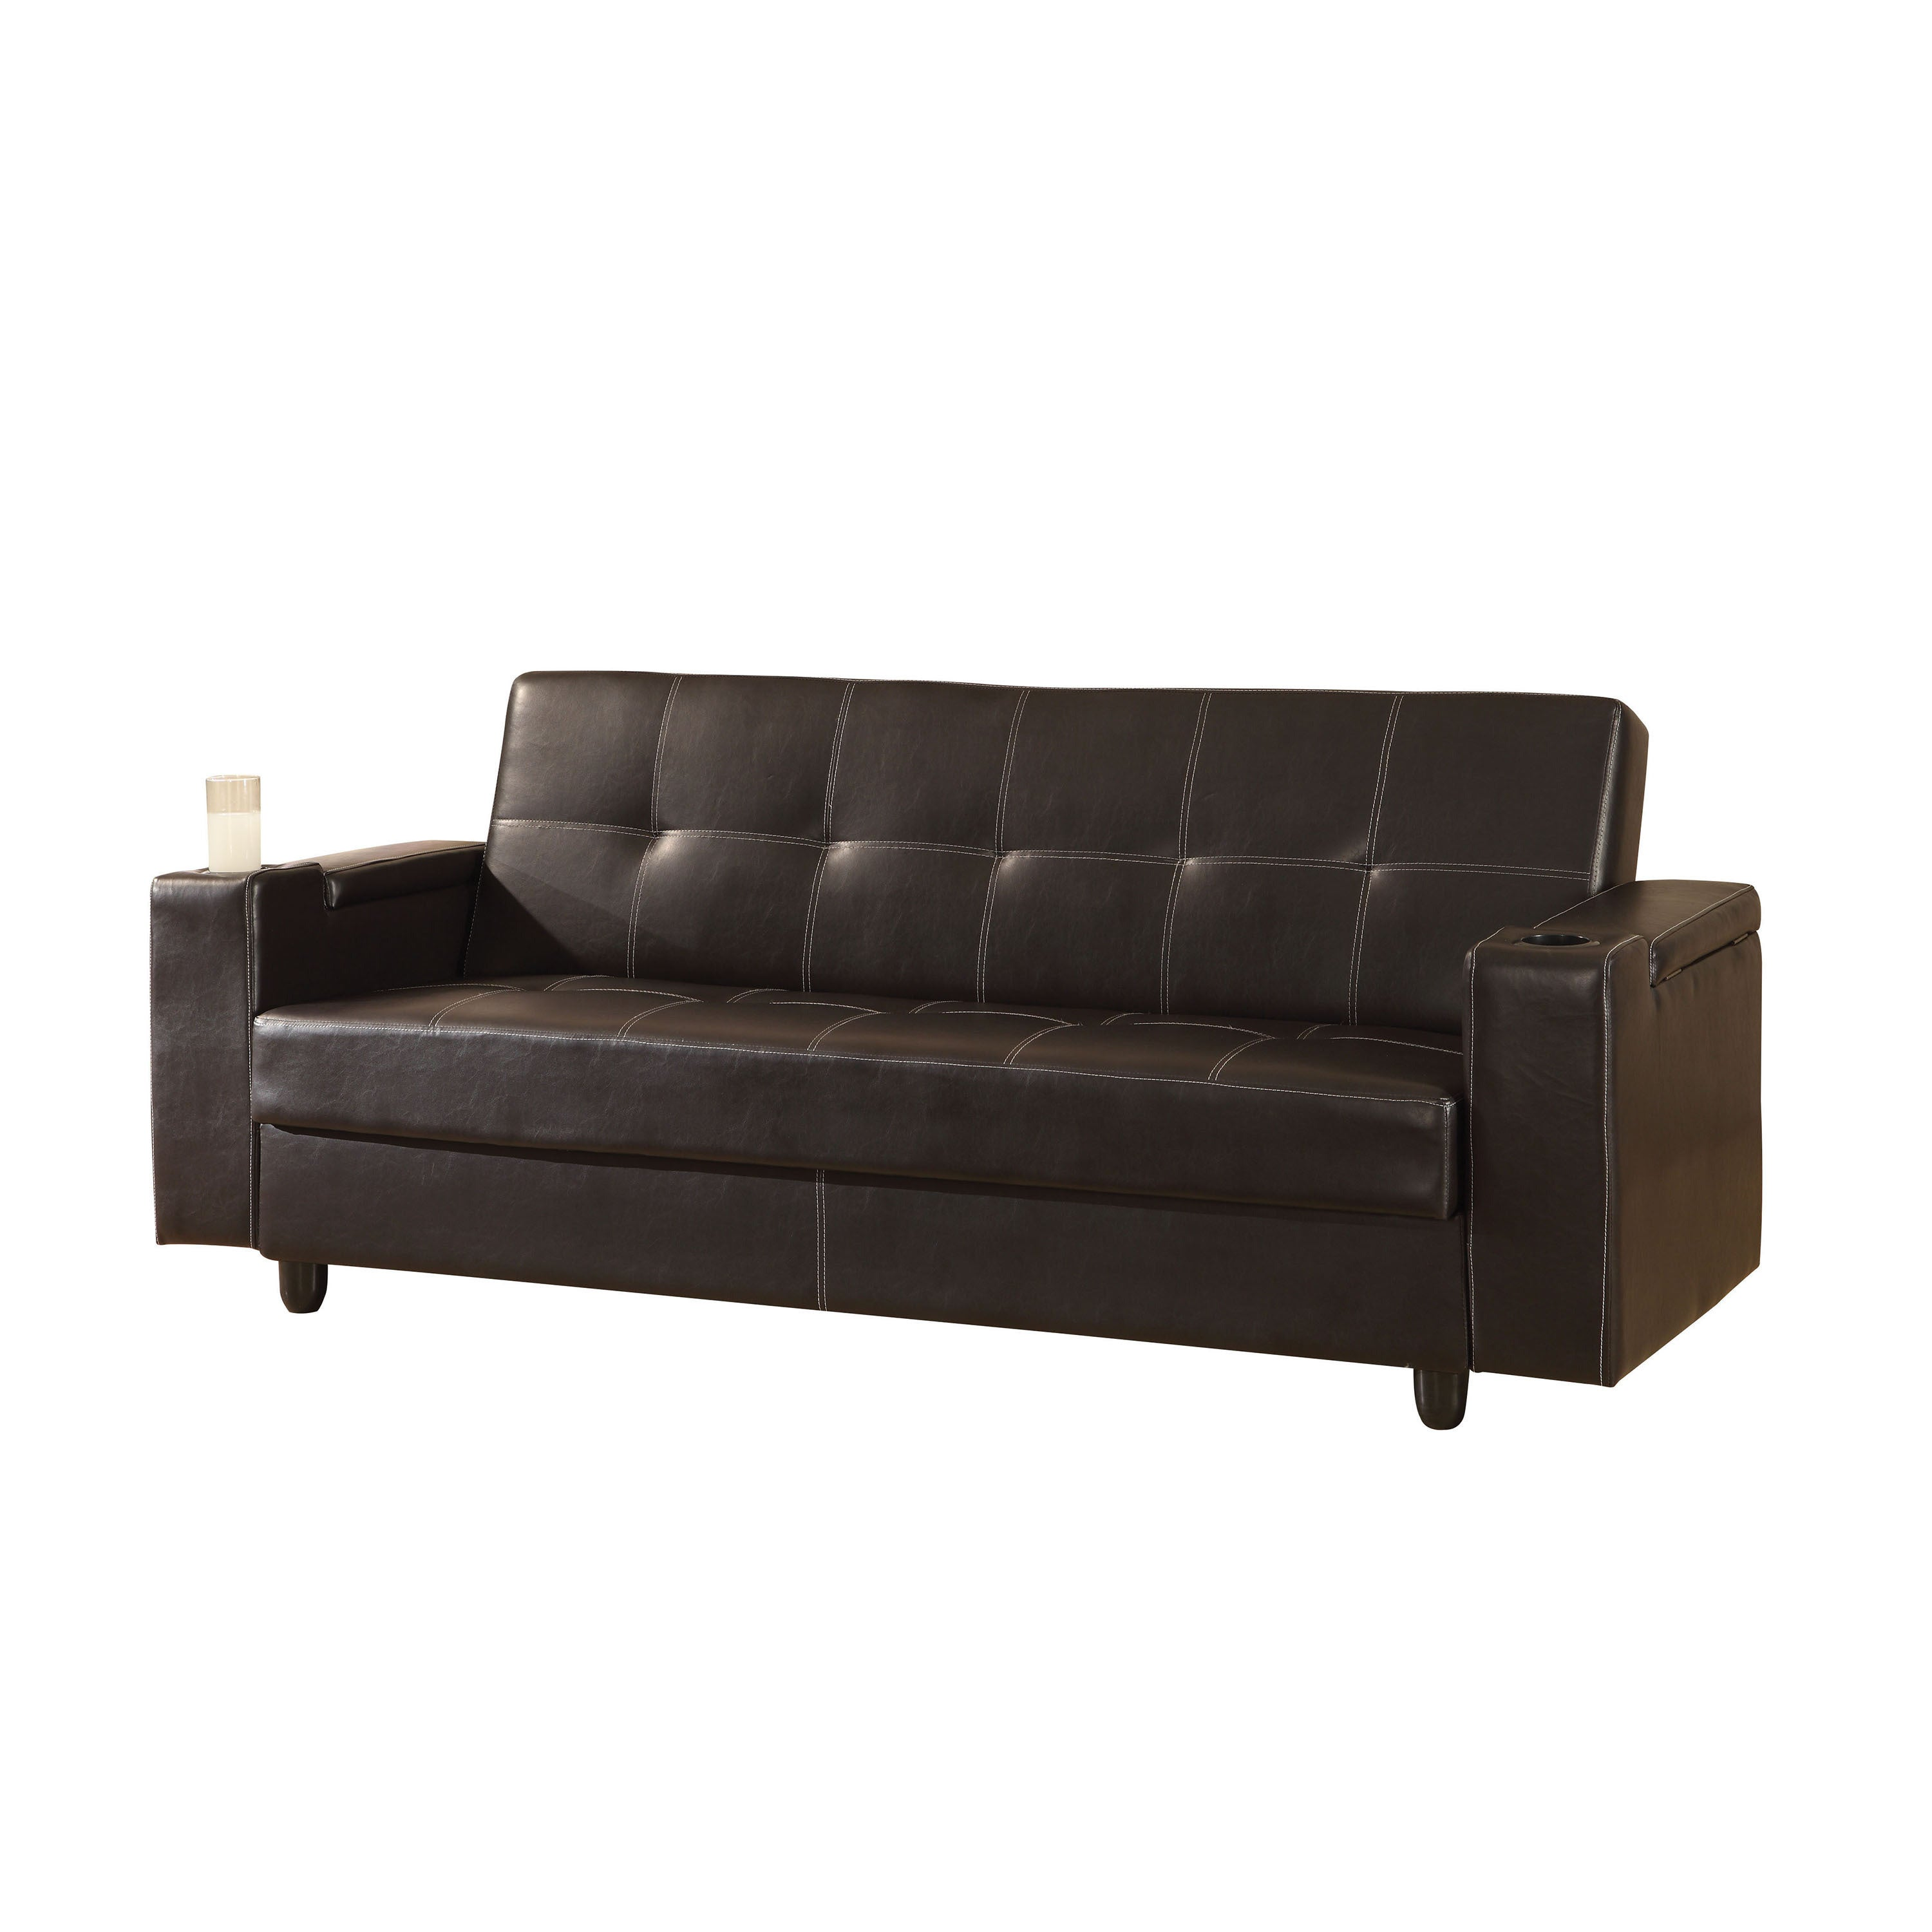 ACME Furniture Sanya Brown Faux Leather Adjustable Futon ...